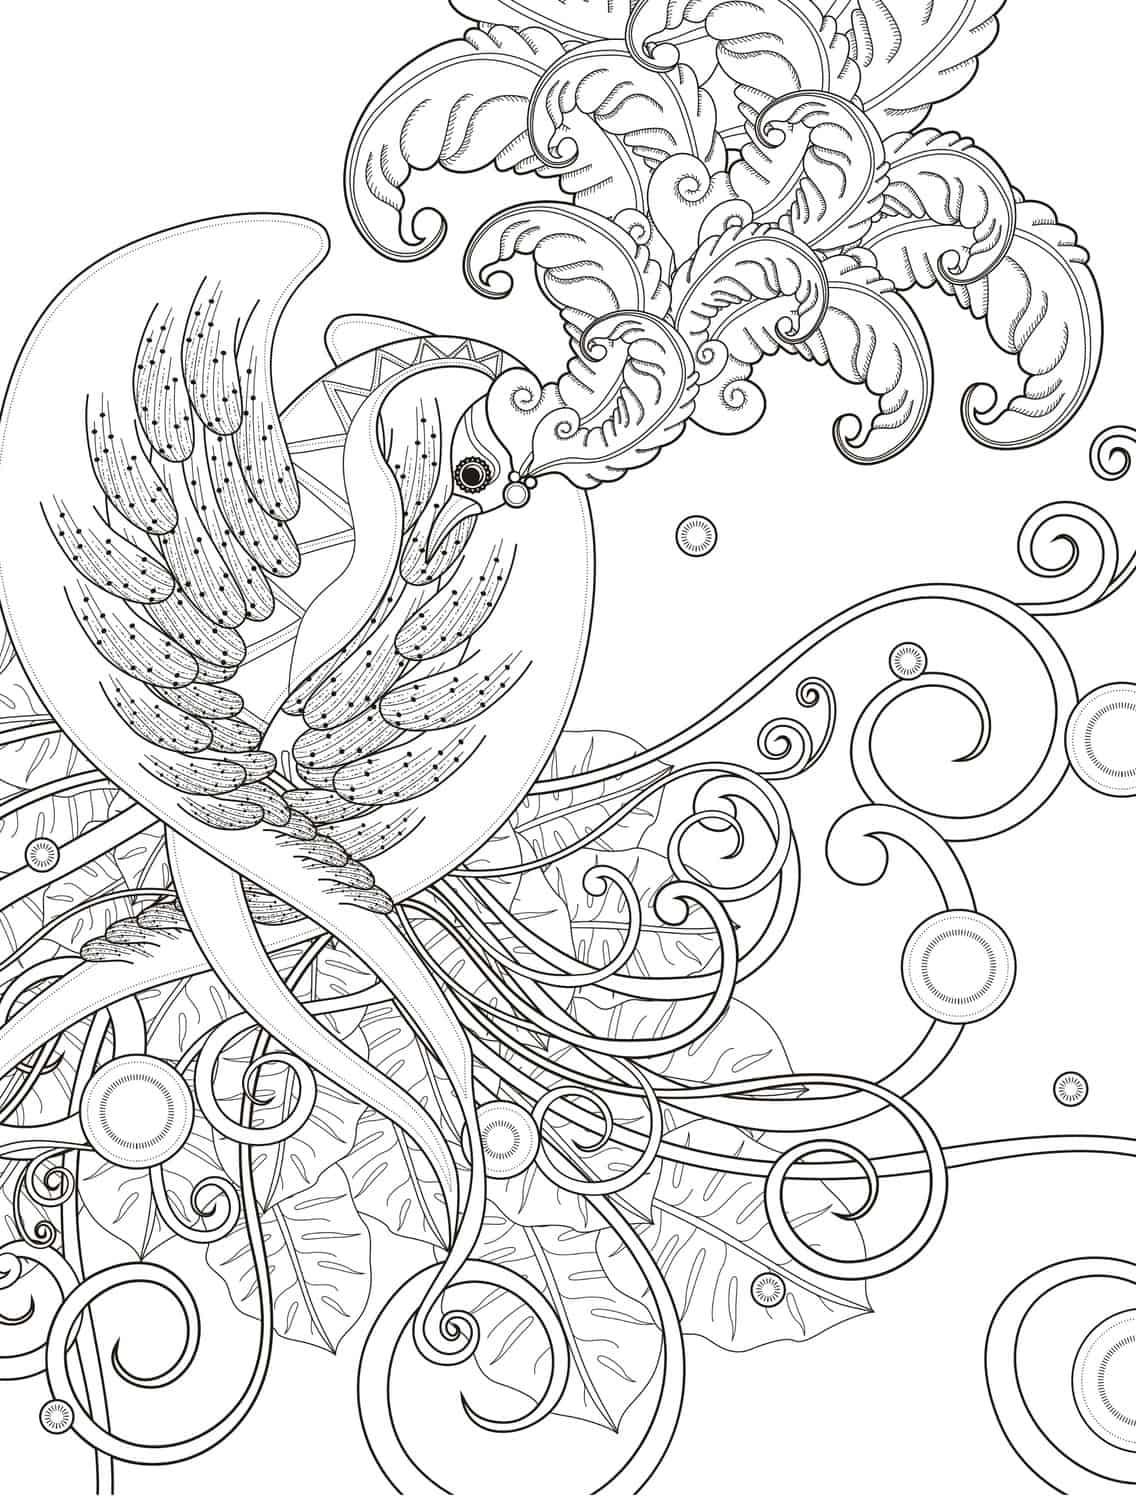 20 Gorgeous Free Printable Adult Coloring Pages - Page 15 of 22 ...